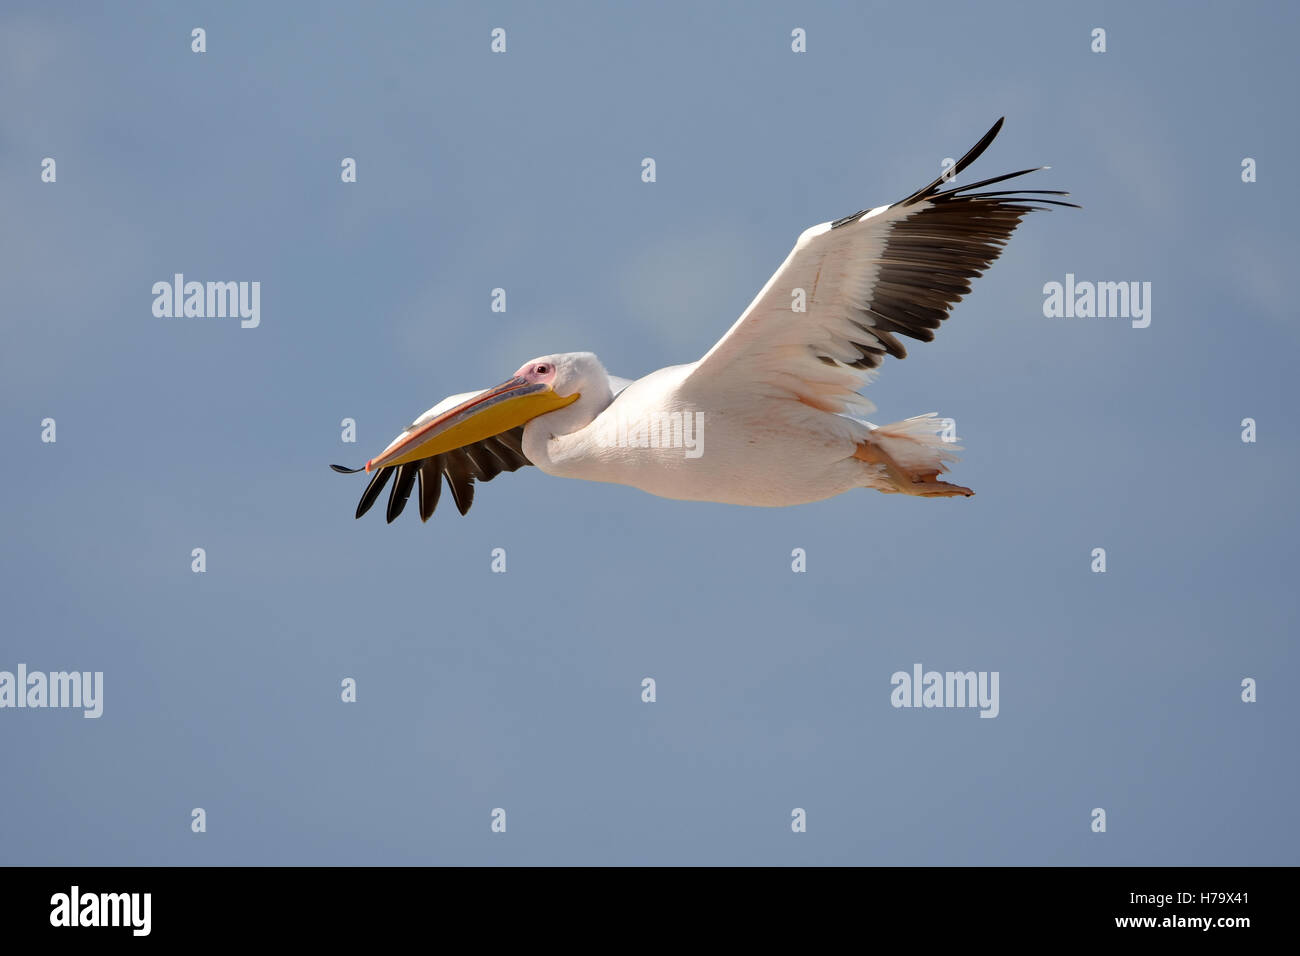 Great White Pelican flying, Side view - Stock Image